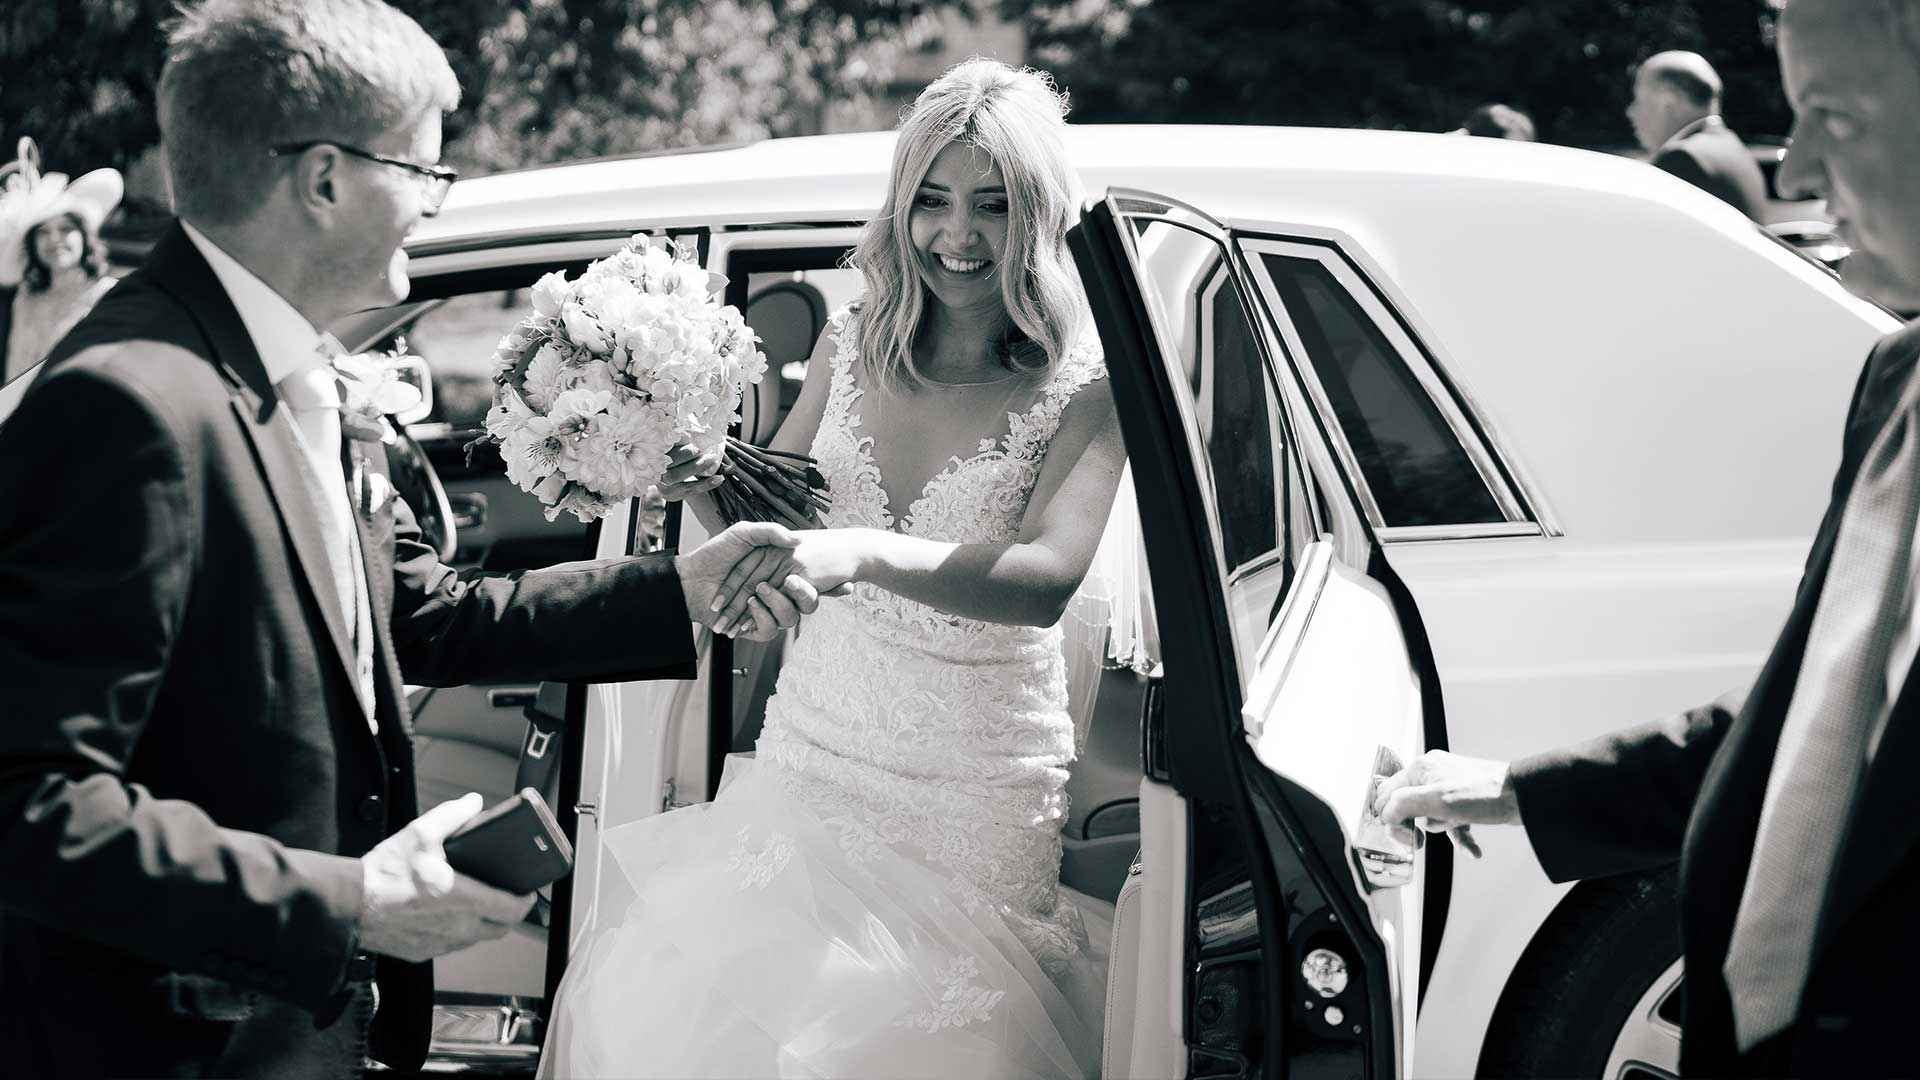 Carla getting out of the Rolls-Royce wedding car